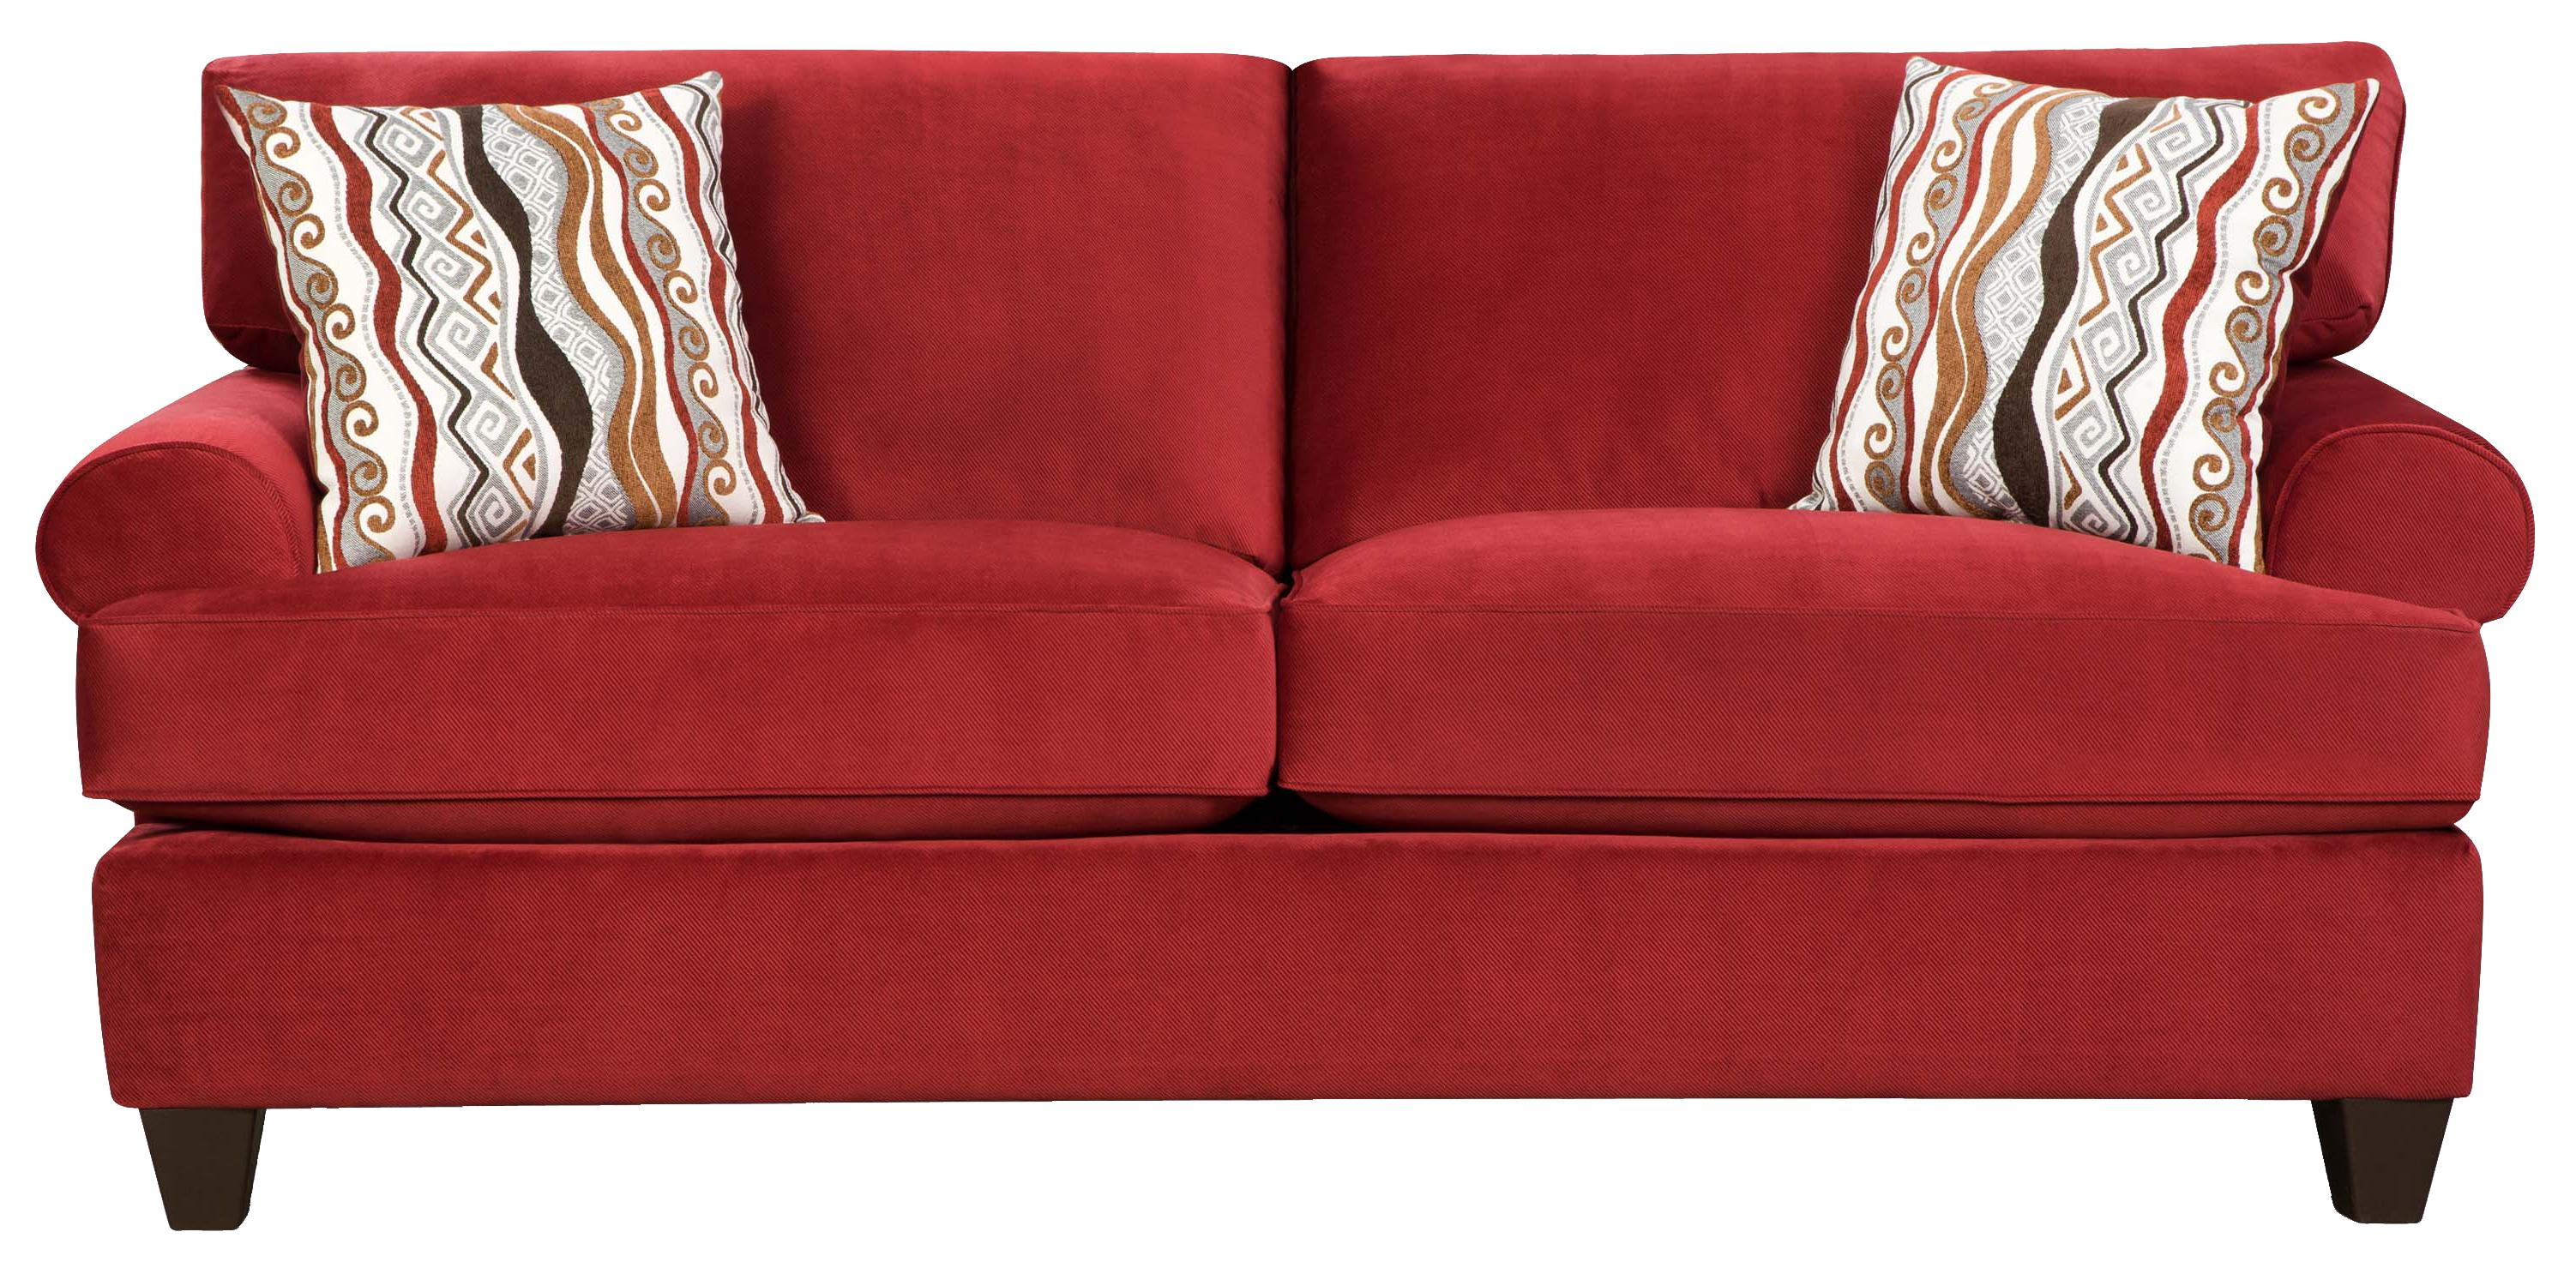 Corinthian 47B0 Casual and Contemporary Living Room Sofa VanDrie